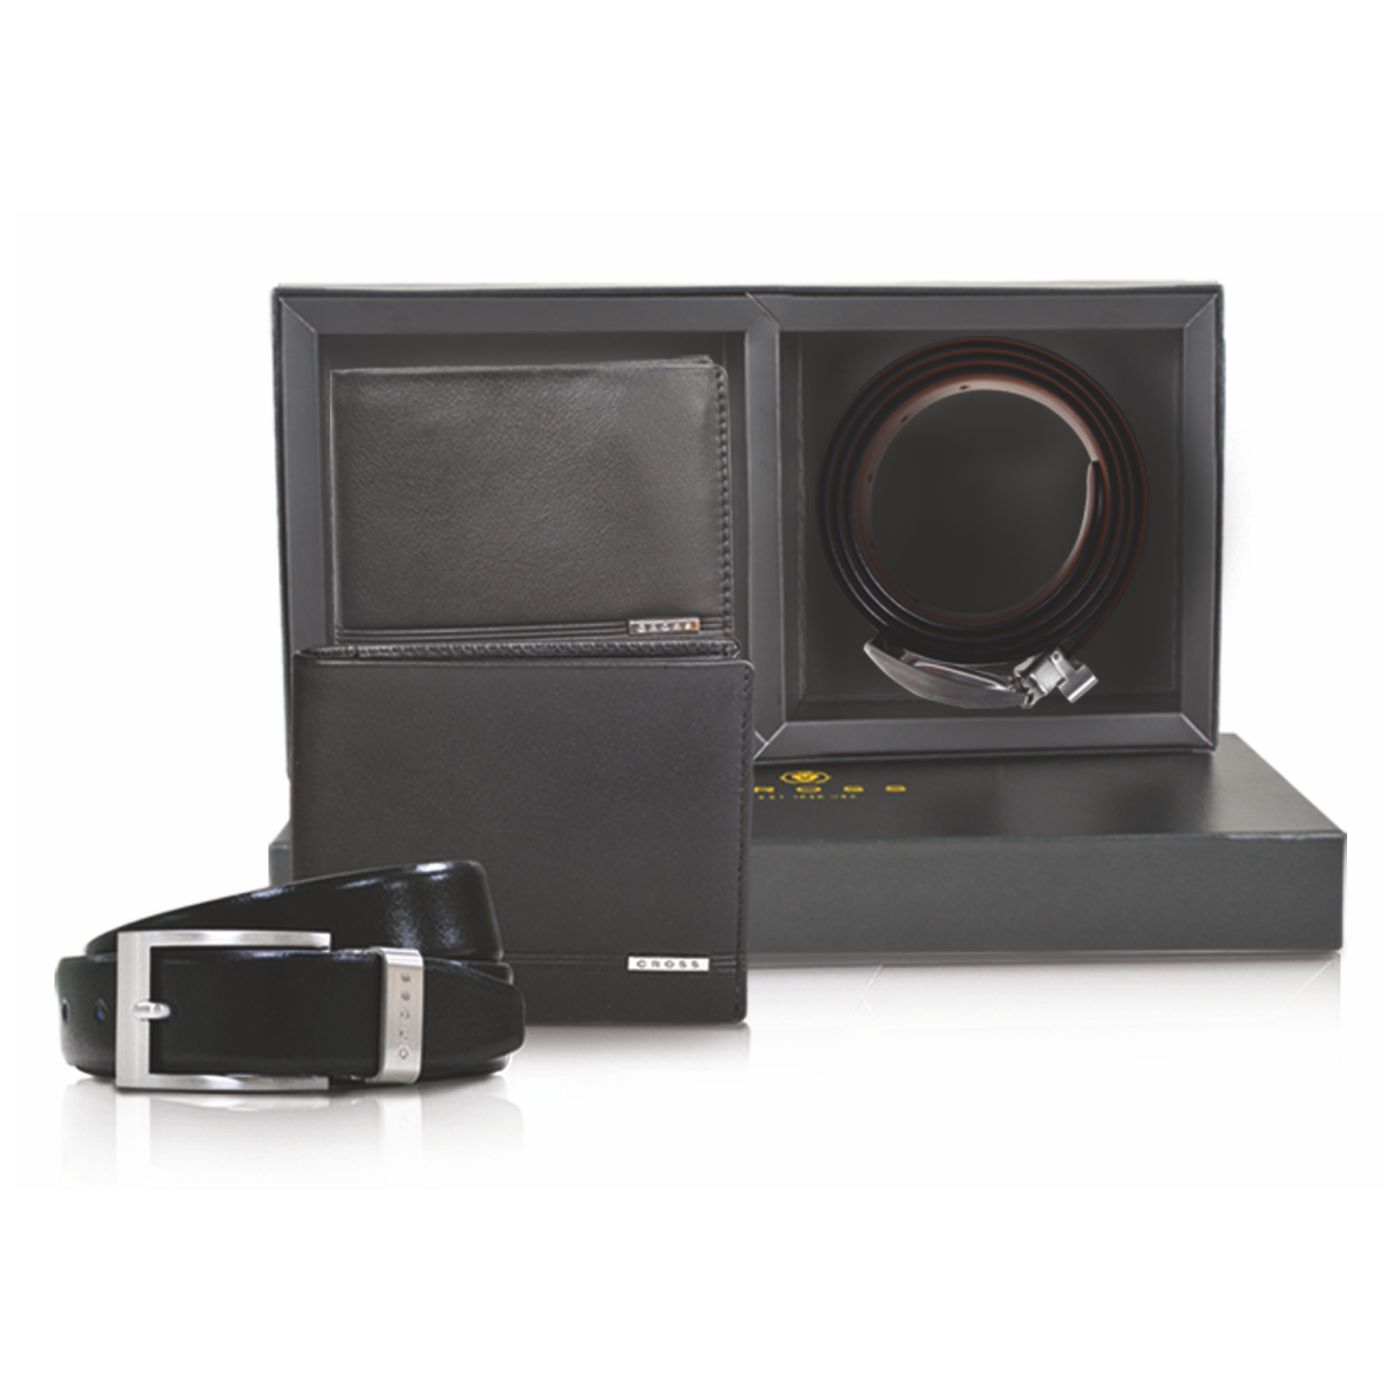 Click Image for Gallery CROSS Classic Century Slim Wallet + Manresa Belt Gift Set, ACC1300_1